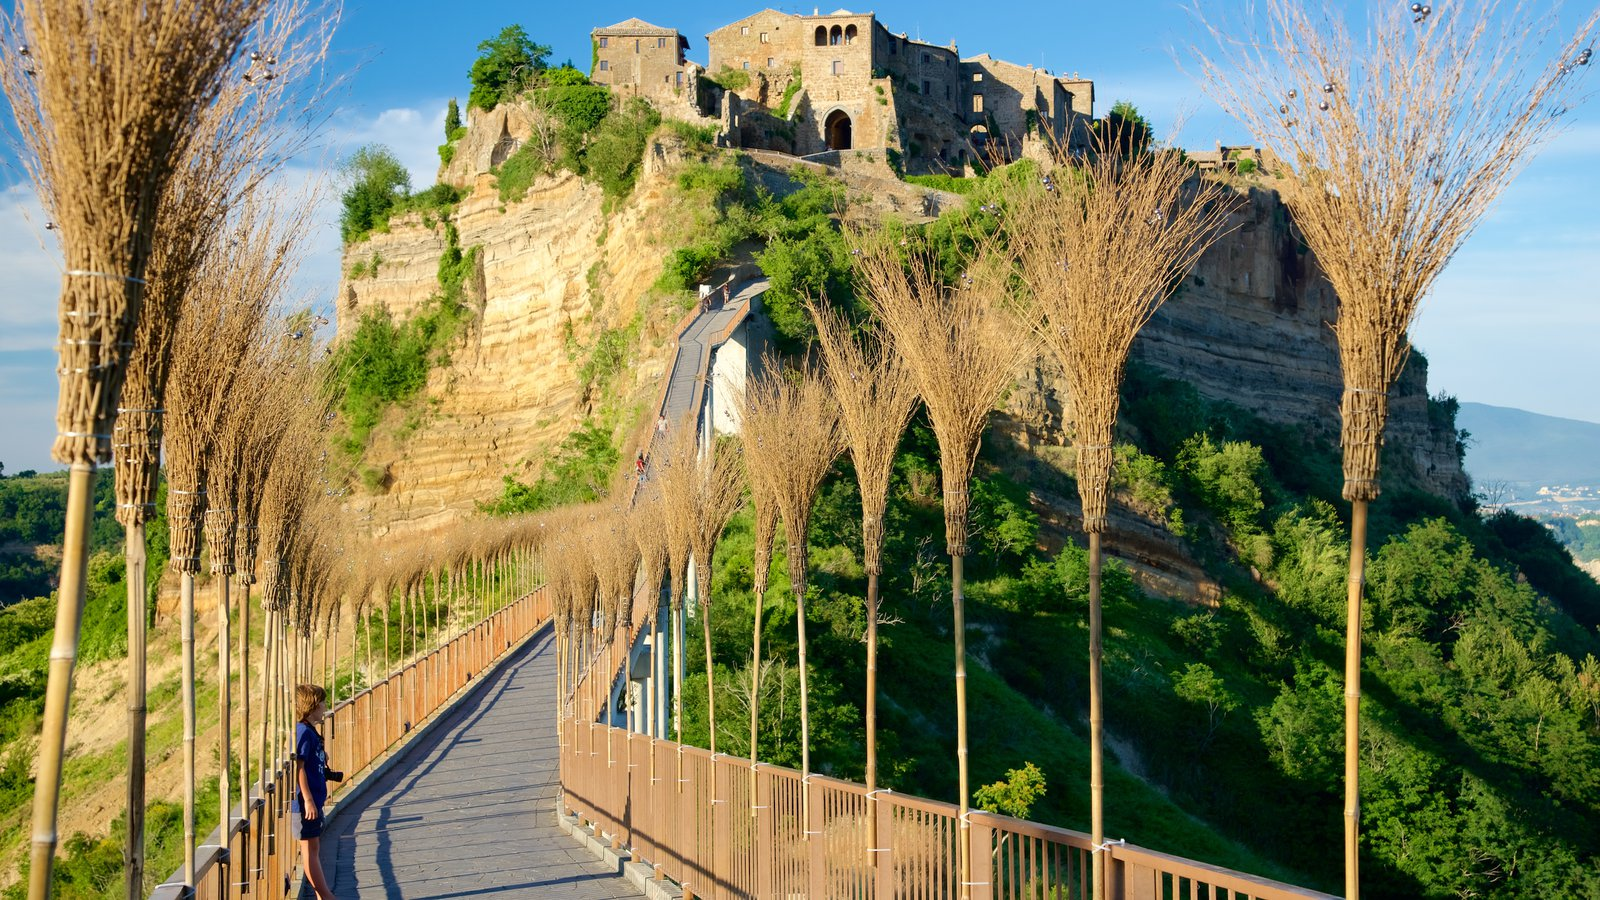 Bagnoregio Pictures: View Photos & Images of Bagnoregio